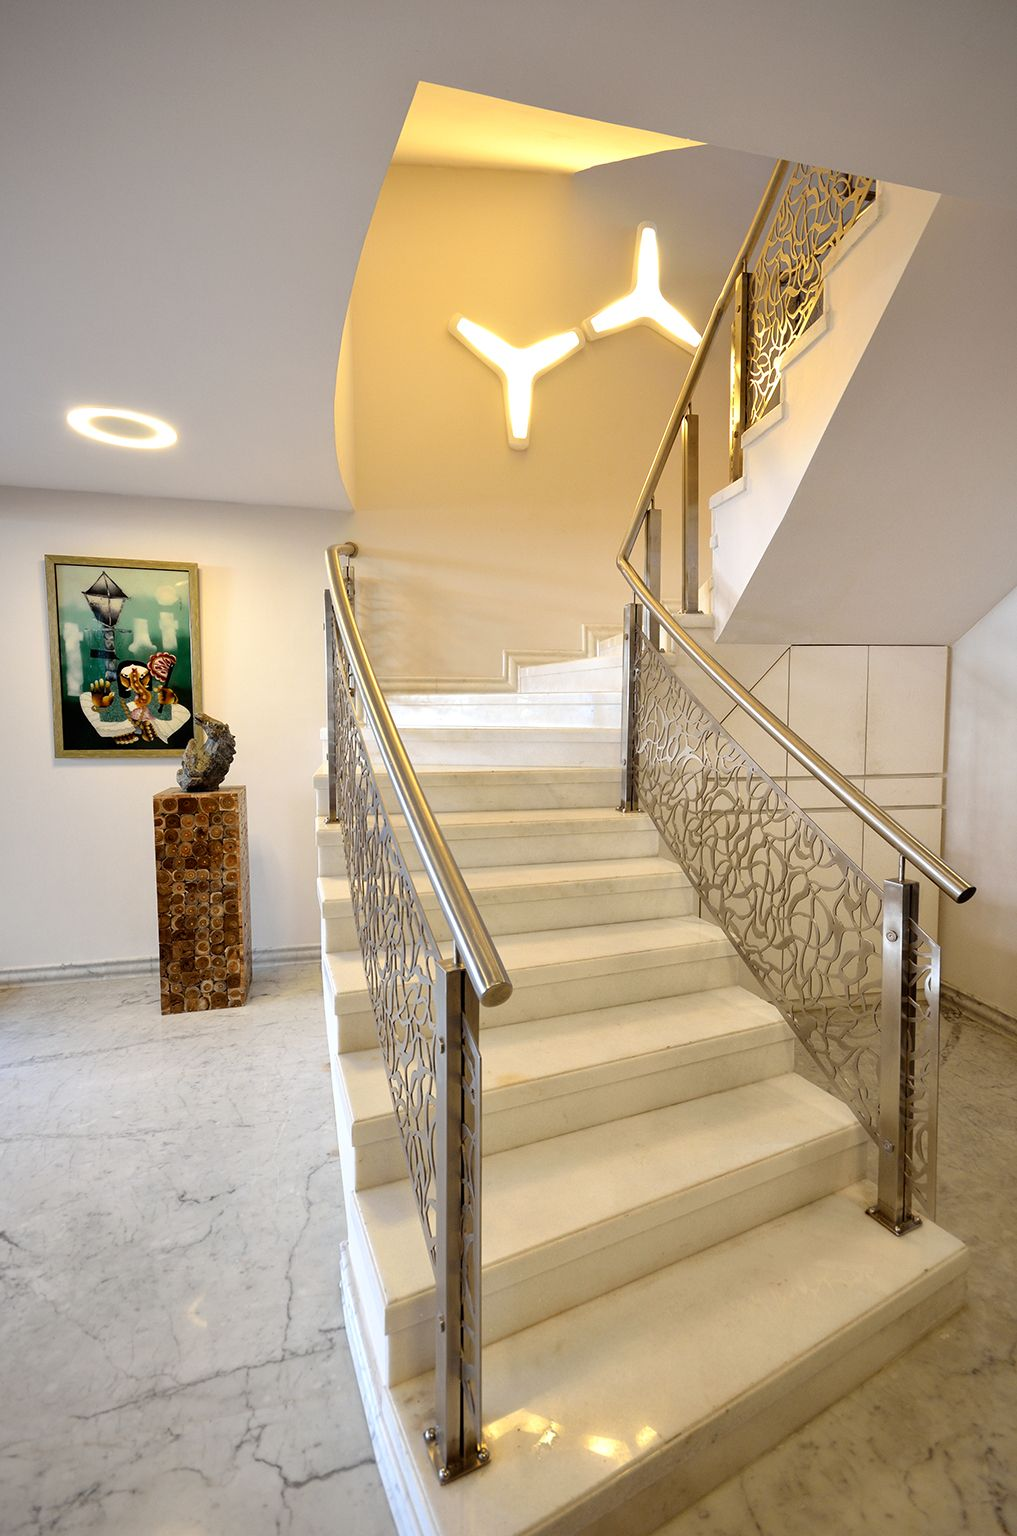 Our #supermodular Izar & Downut lighting at a private residence in